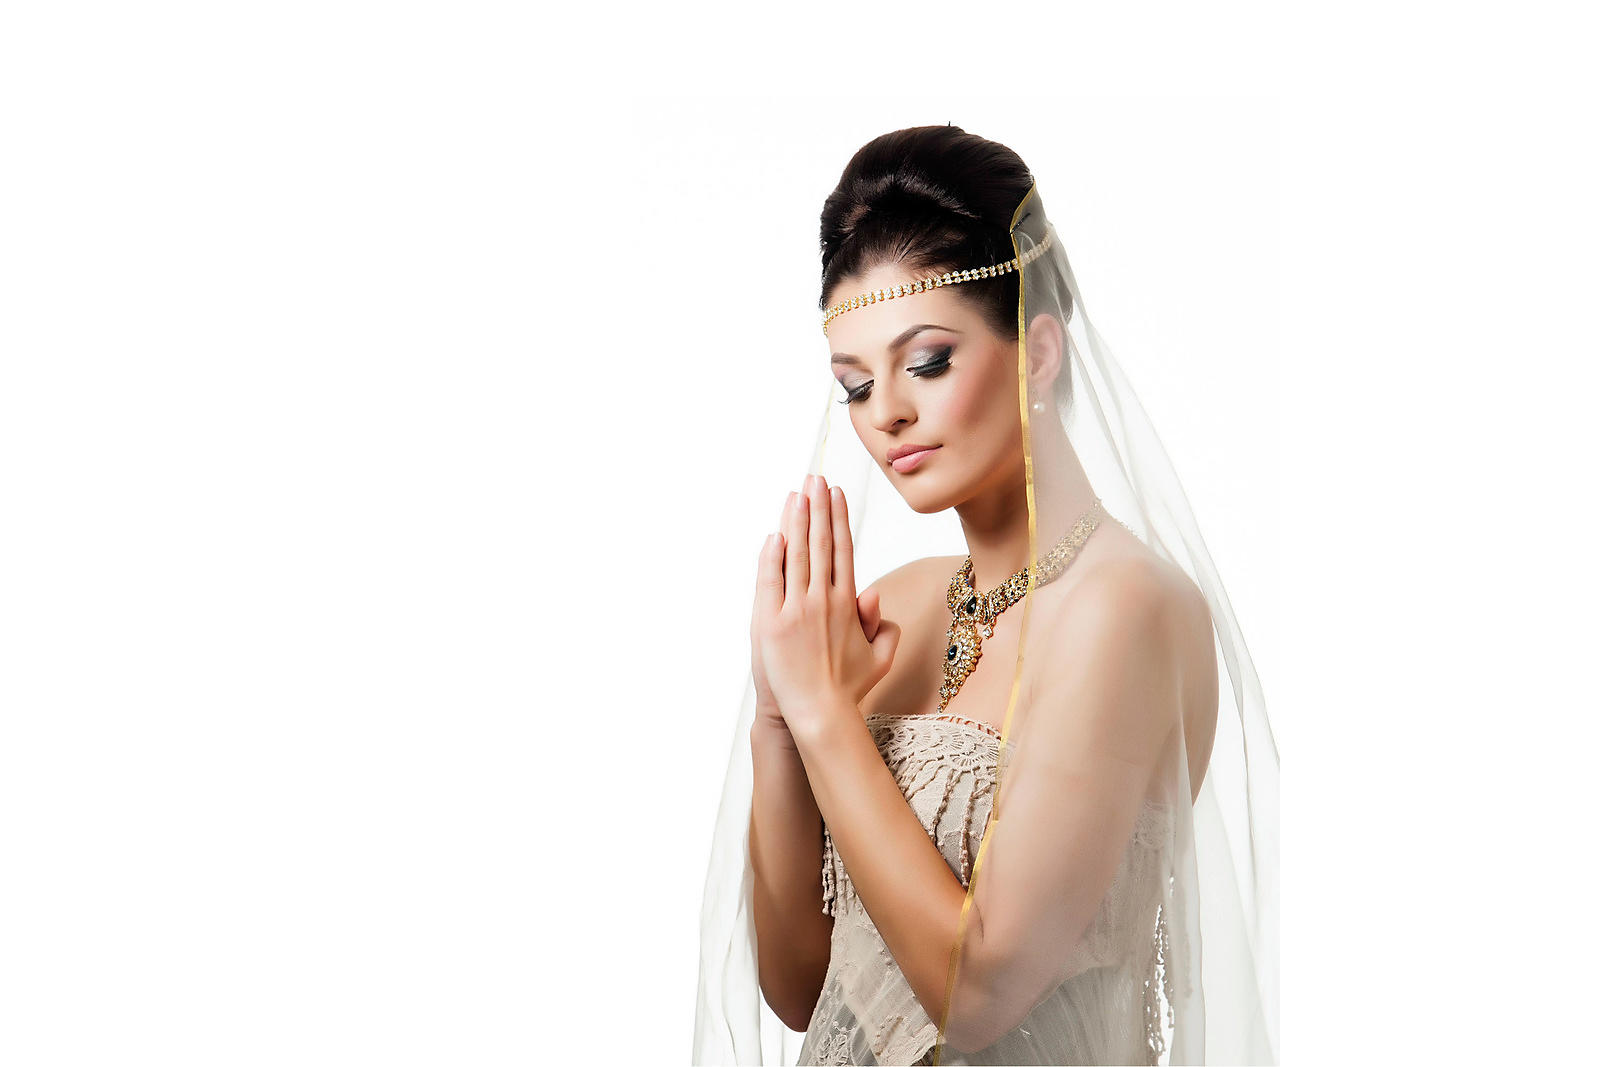 Indian-bride-wearing-white-veil-against-white-background-copyright-Rob-Johns_20130523_RJ_2372